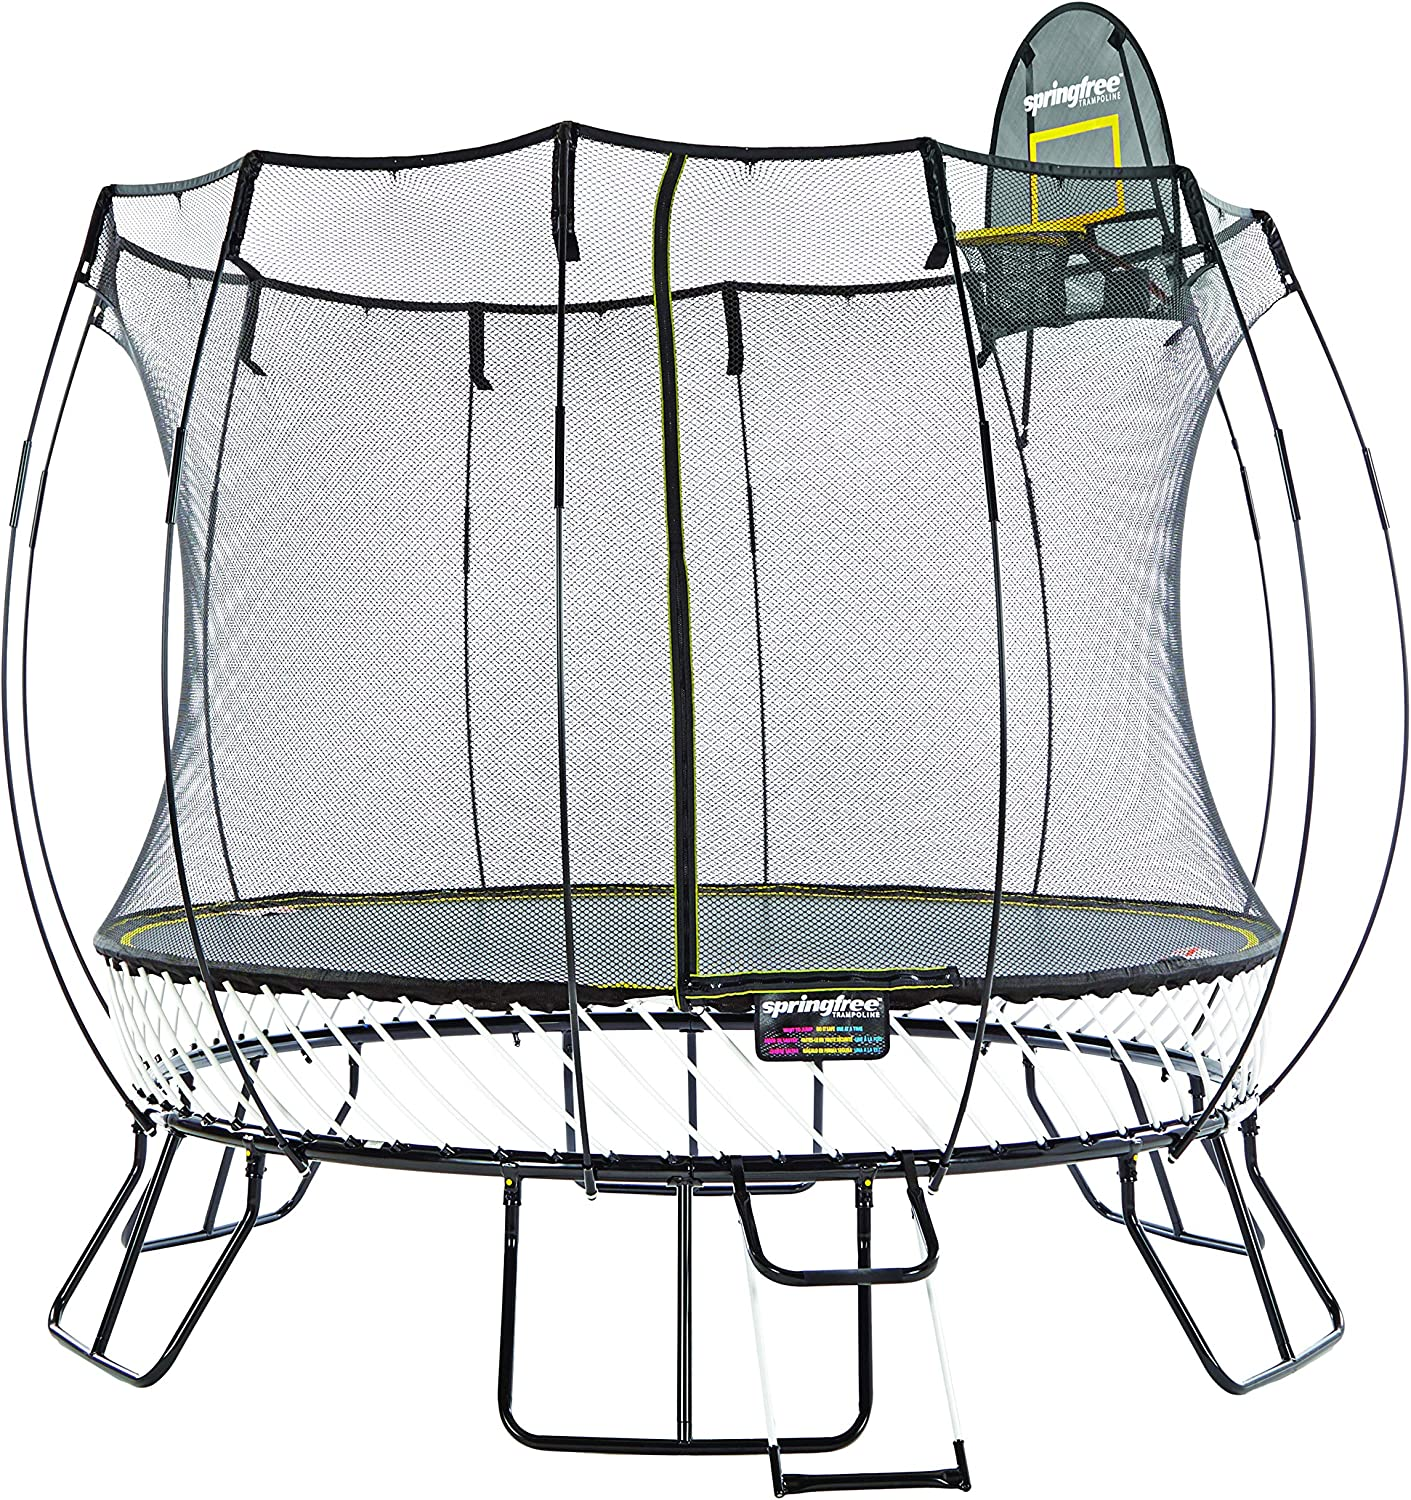 Top 10 Best Trampolines With Basketball Hoop 2021 - Reviews